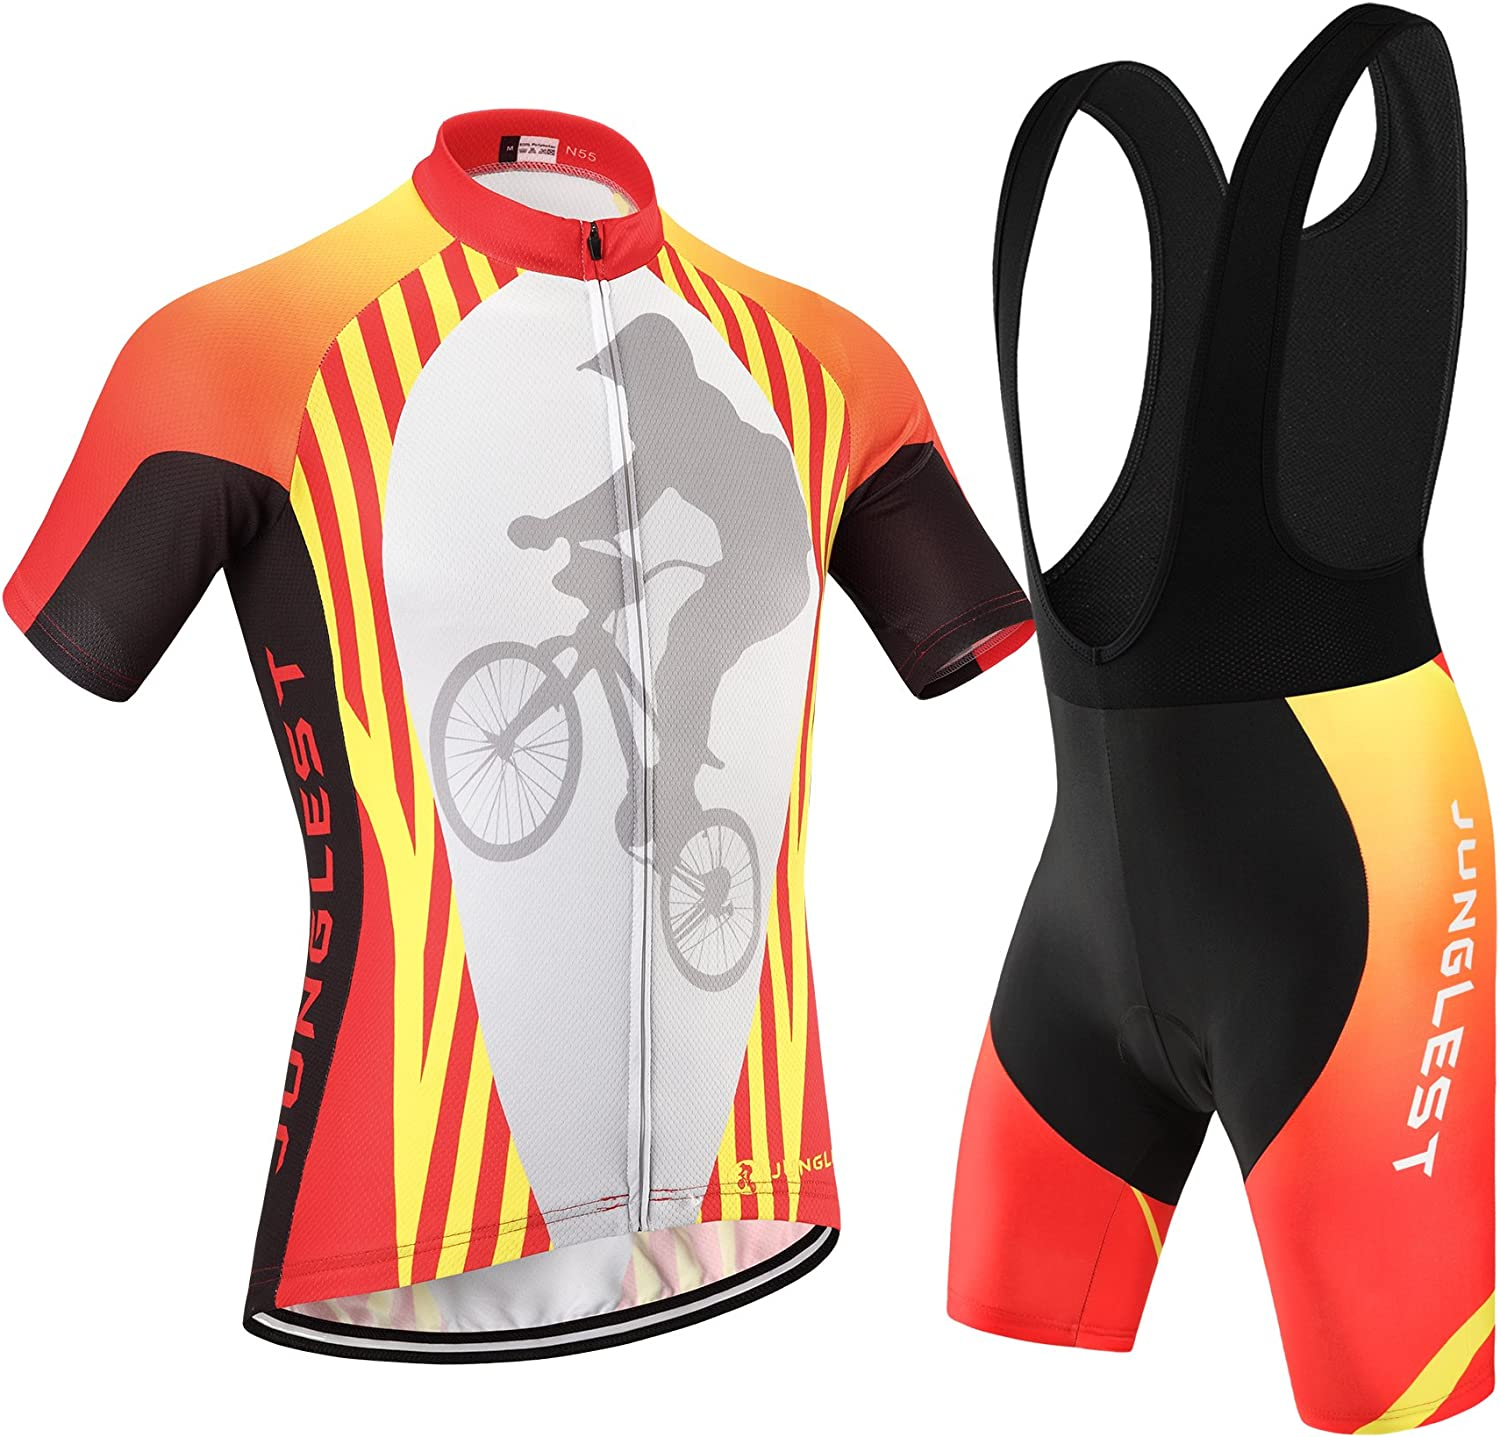 Cycling jersey Set, Maillot de Cyclisme Wen Homme Short sleeve Manches Courtes(S5XL,option bib Cuissard,3D pad Coussin) N55